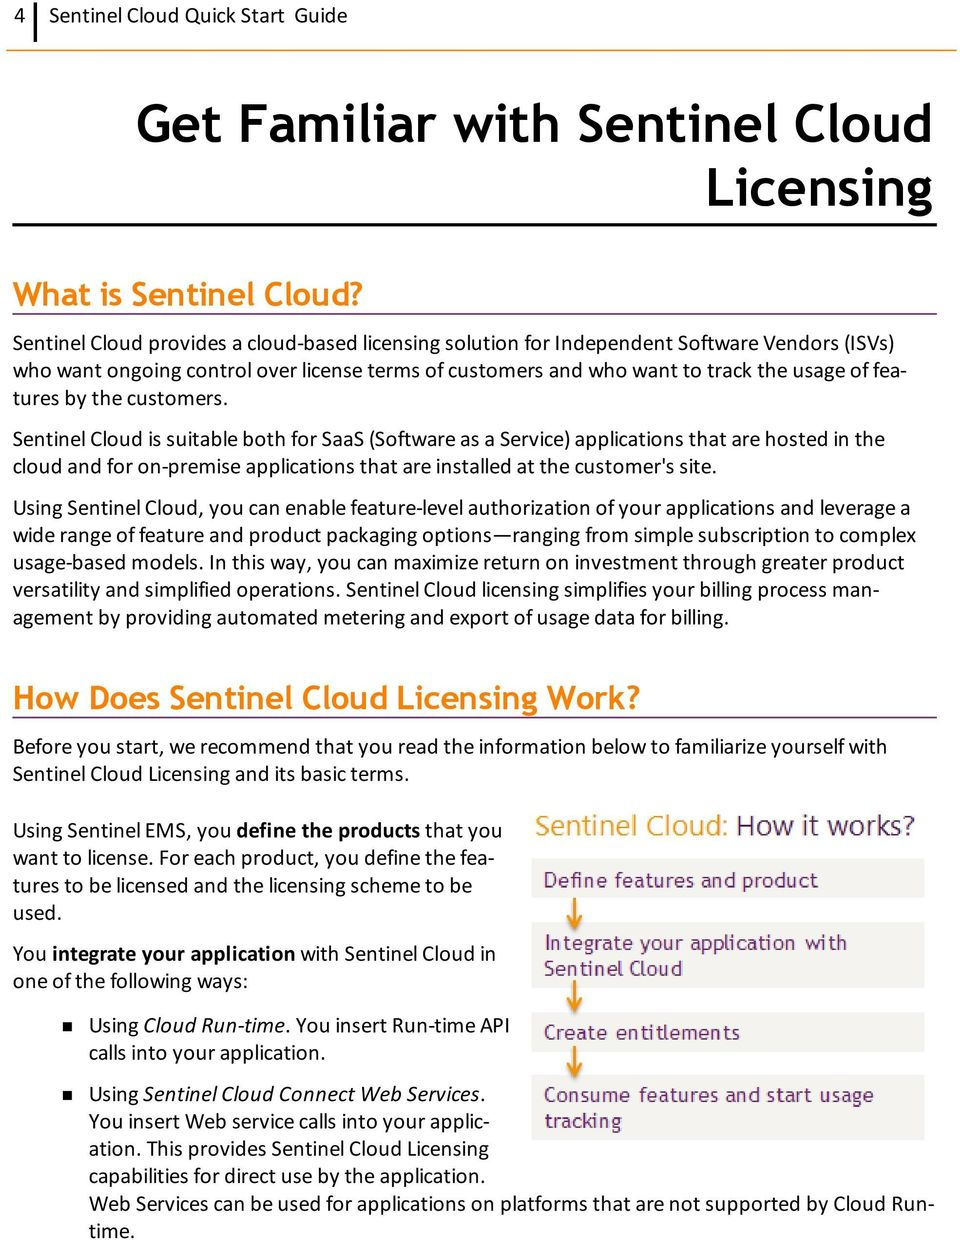 by the customers. Sentinel Cloud is suitable both for SaaS (Software as a Service) applications that are hosted in the cloud and for on-premise applications that are installed at the customer's site.